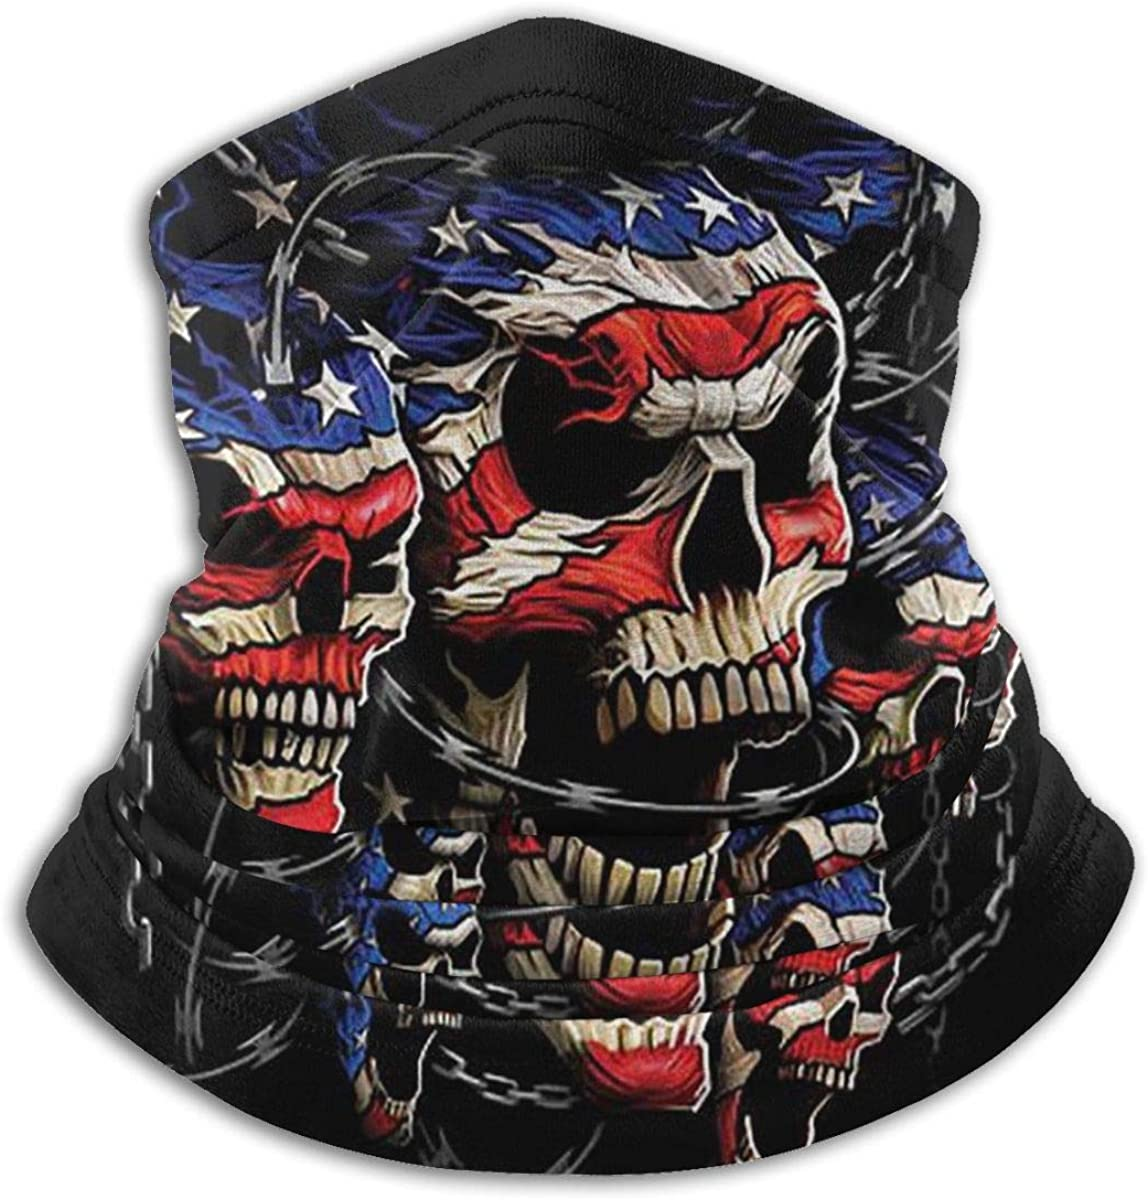 CLERO& Scarf Fleece Neck Warmer USA Skulls American Flag Patriotic Skull Windproof Outdoor Headwear Comfortable Neck Gaiter Warmer Face Mask for Cold Weather Winter Outdoor Sports